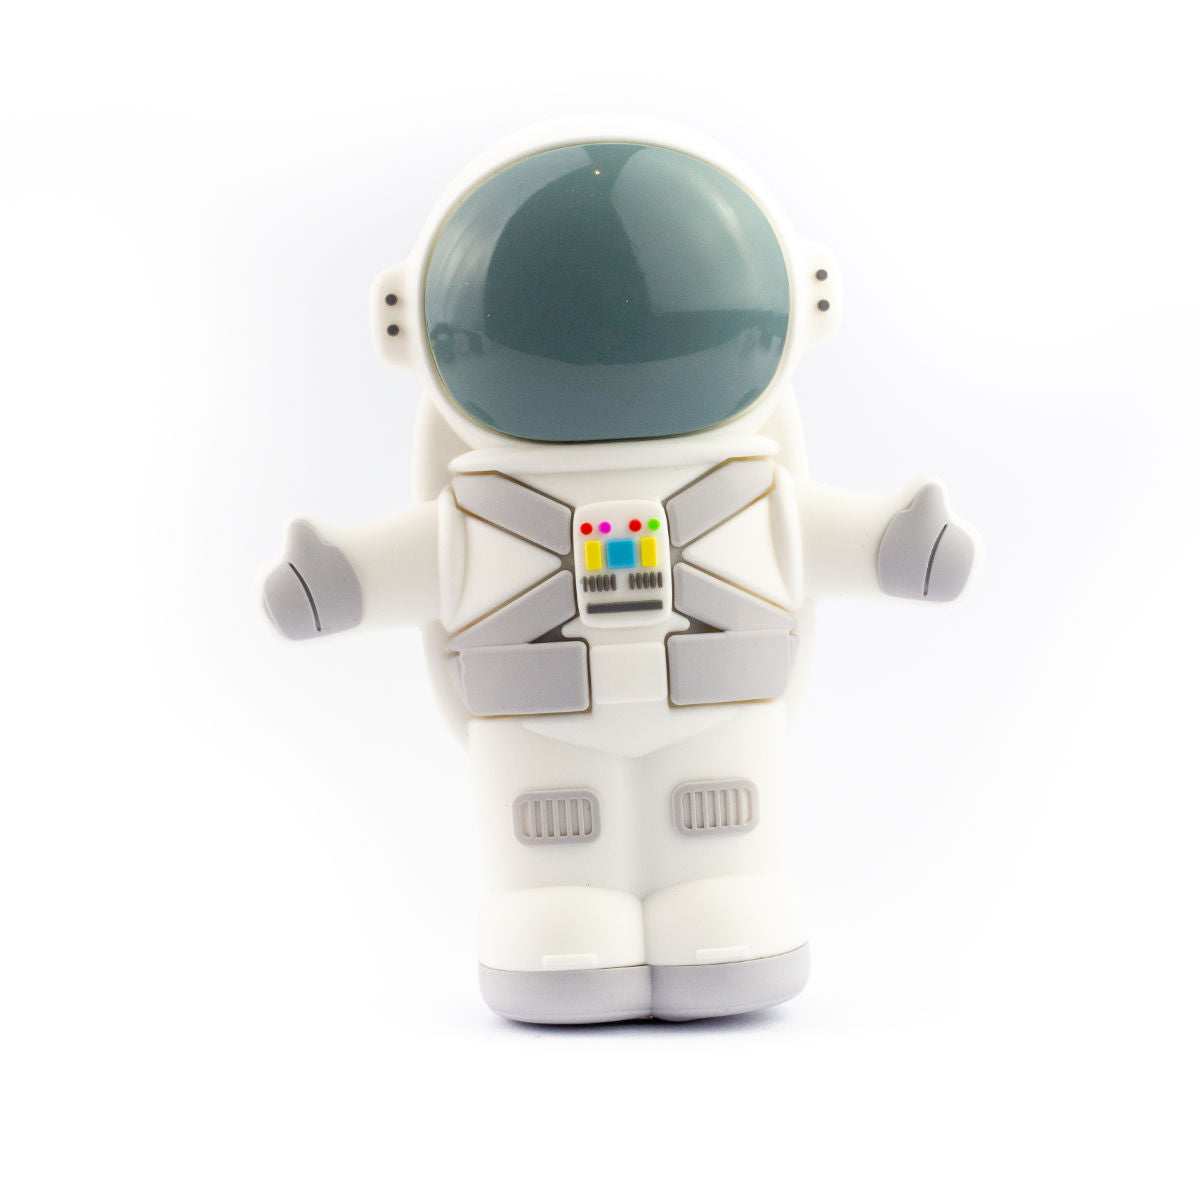 Moji Emoji power bank 2600mAh, space boy